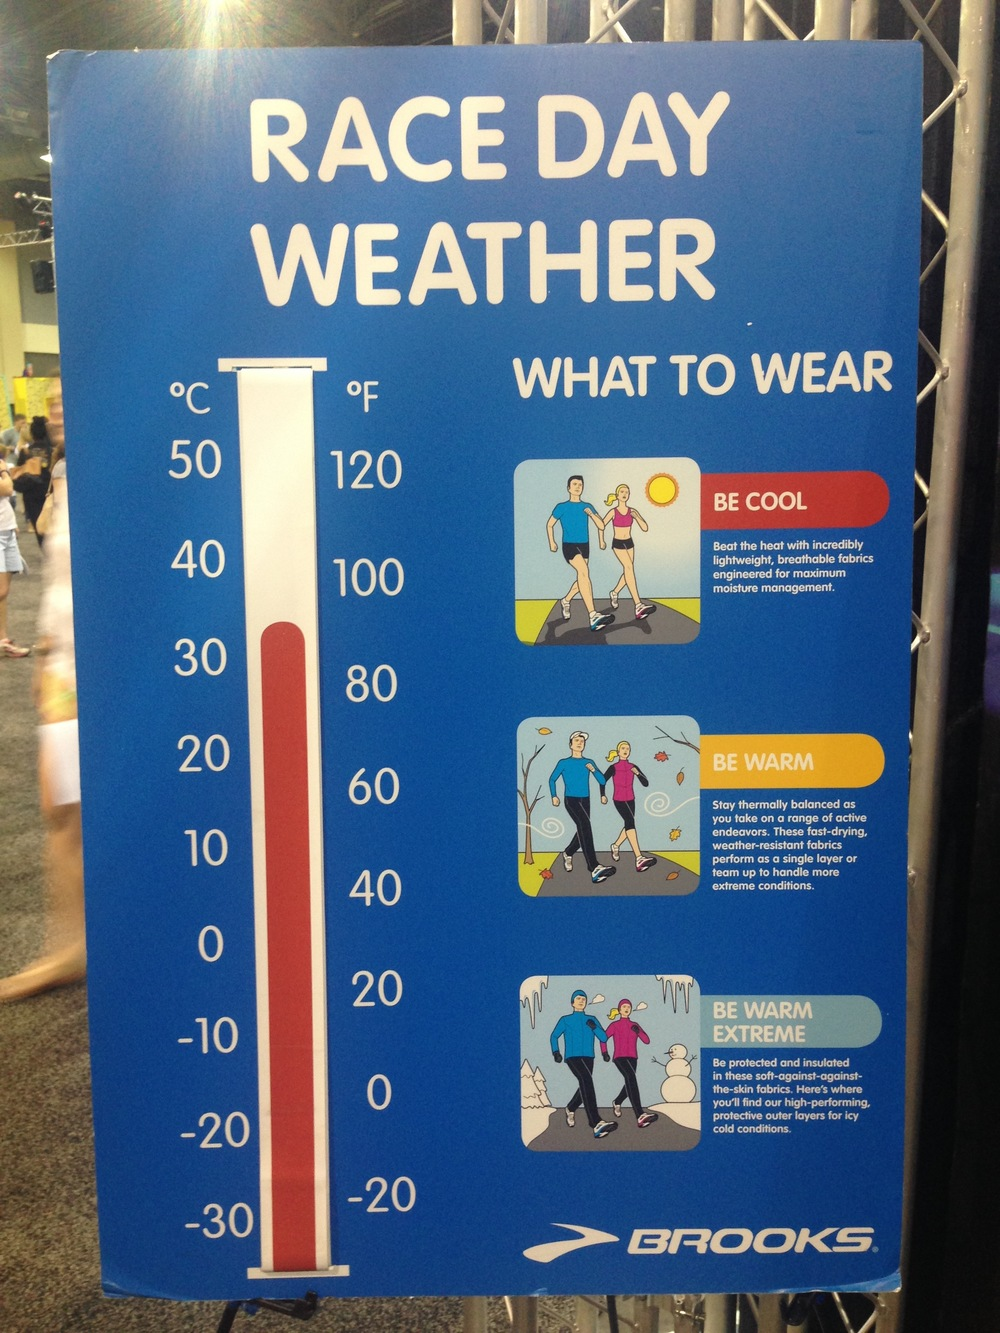 Weather warning at the expo!